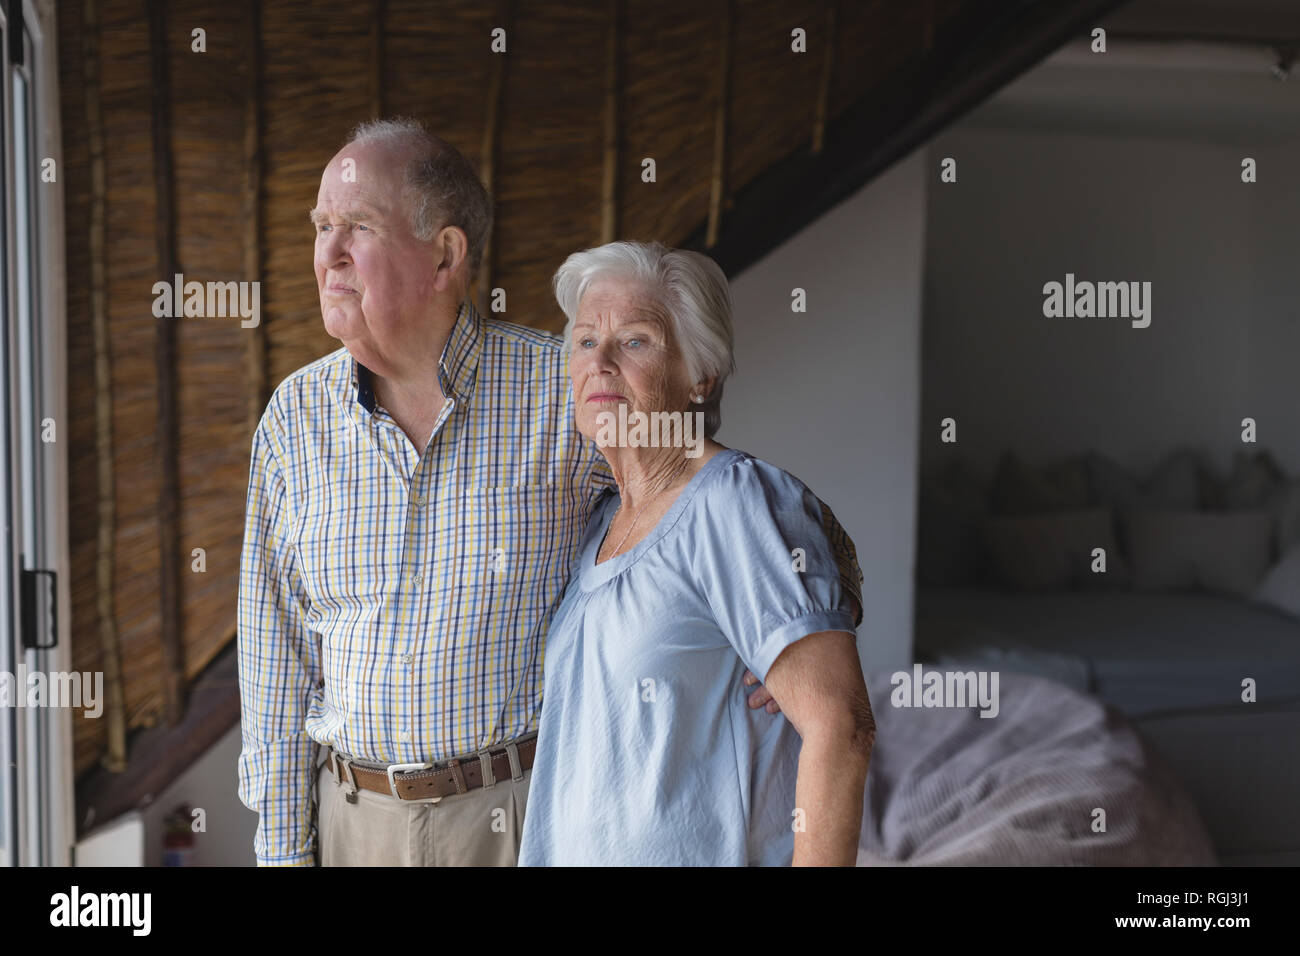 Side view of an active senior couple standing together and embracing each other while looking away at home - Stock Image